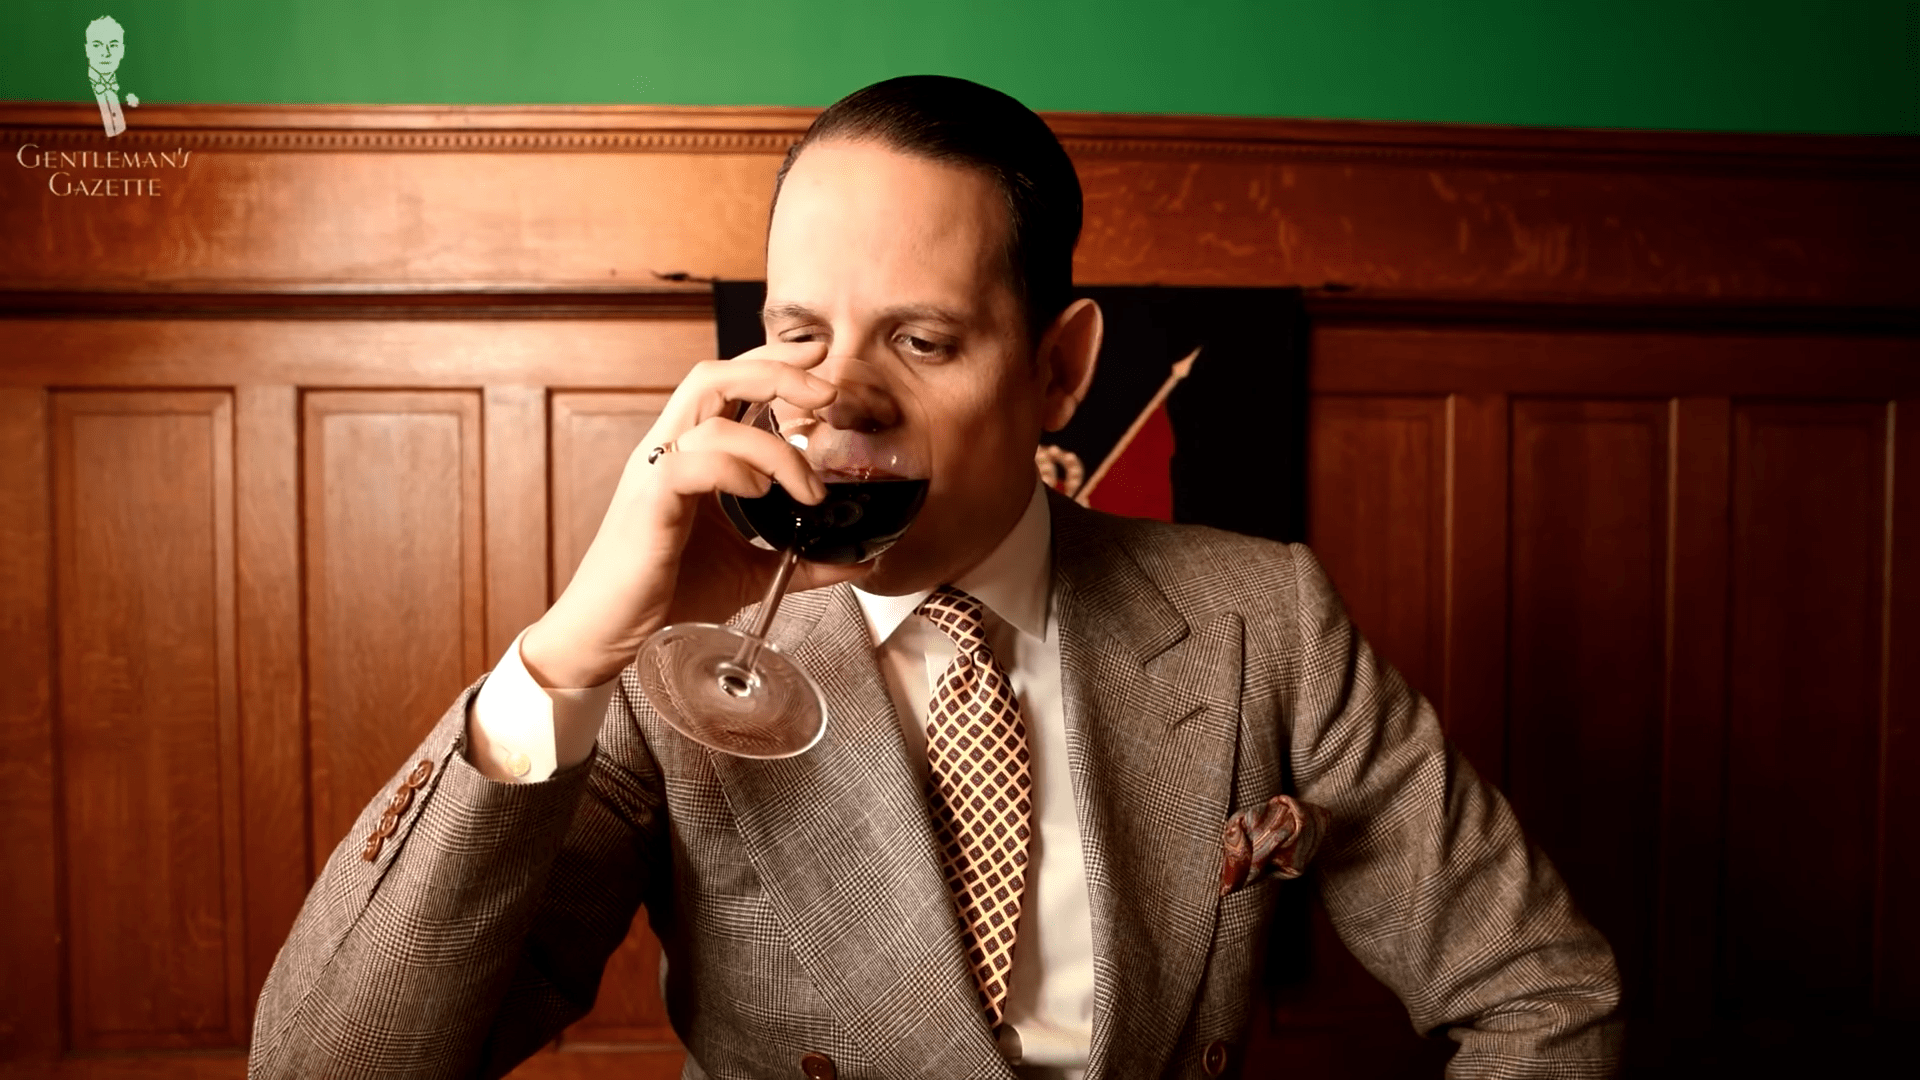 How To Drink Like A Gentleman